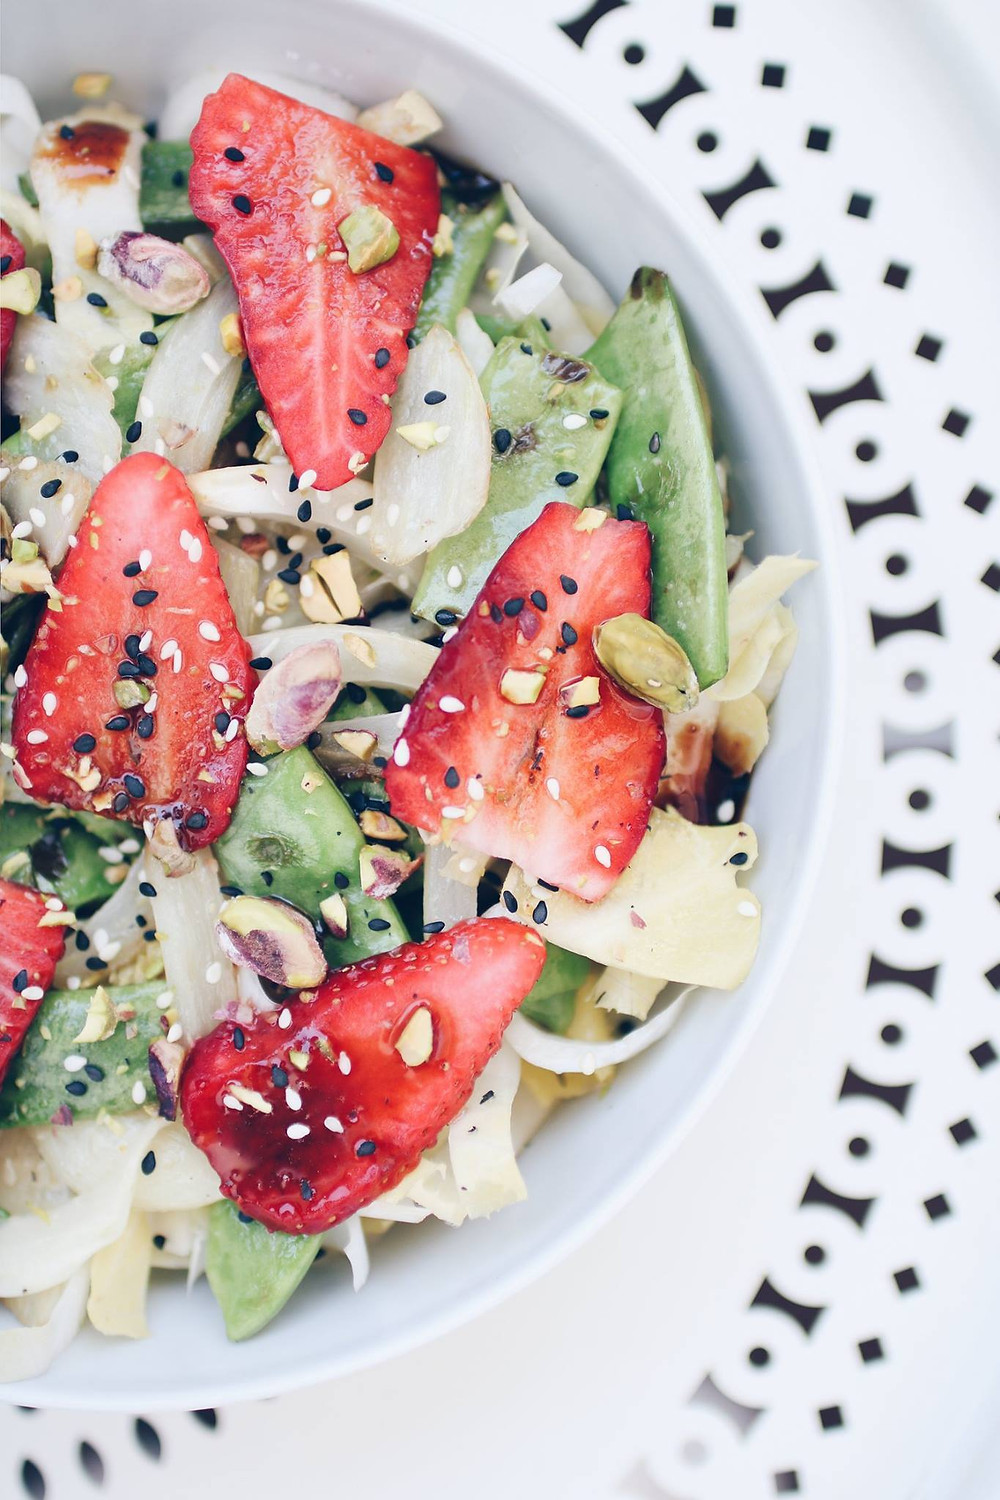 A flatlay view of a plate on a white table. A spring salad of green beans, fennel, strawberries and pistachios with sesame seeds.